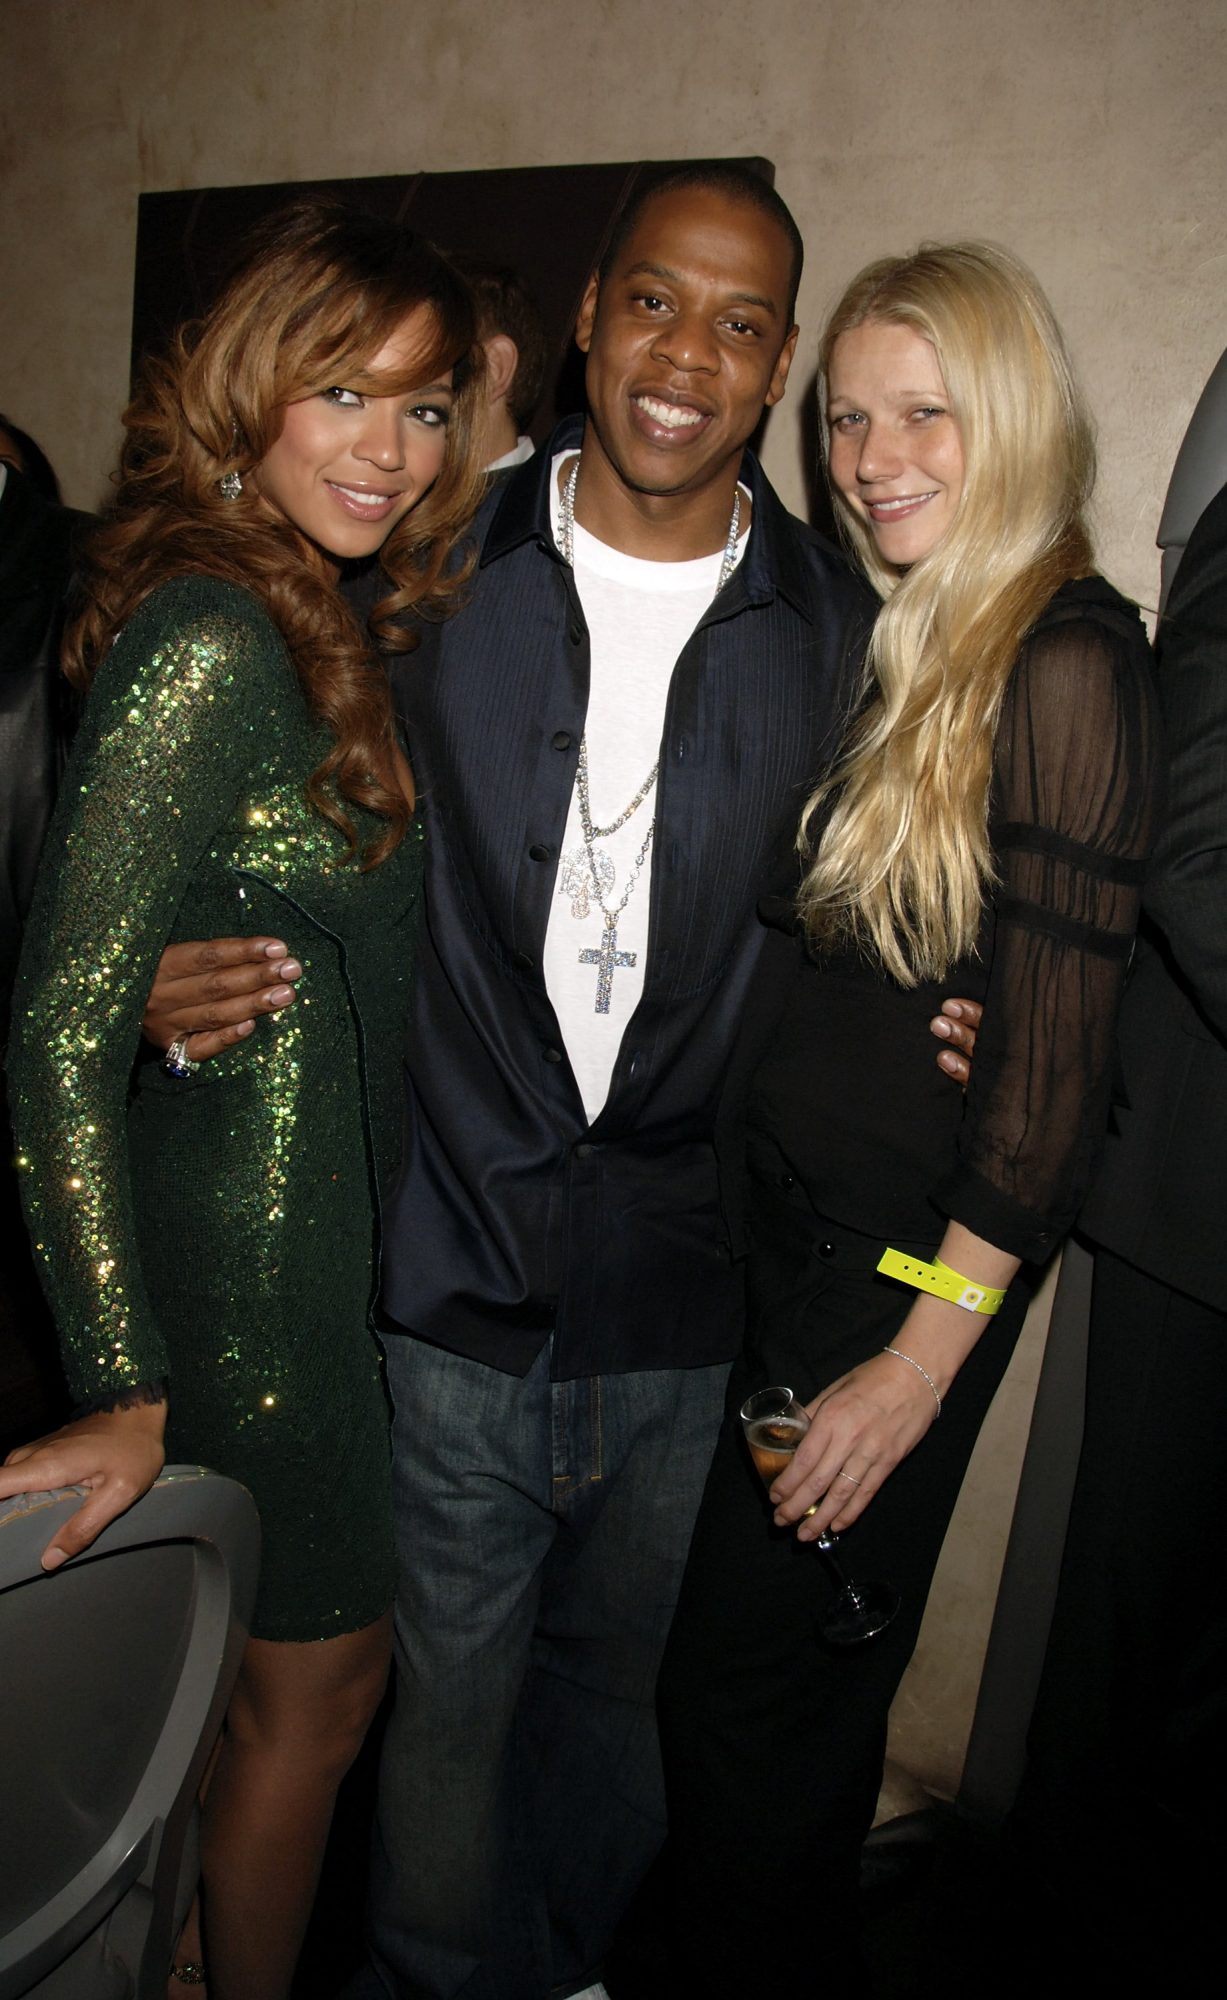 Gwyneth Paltrow and Jay Z lead